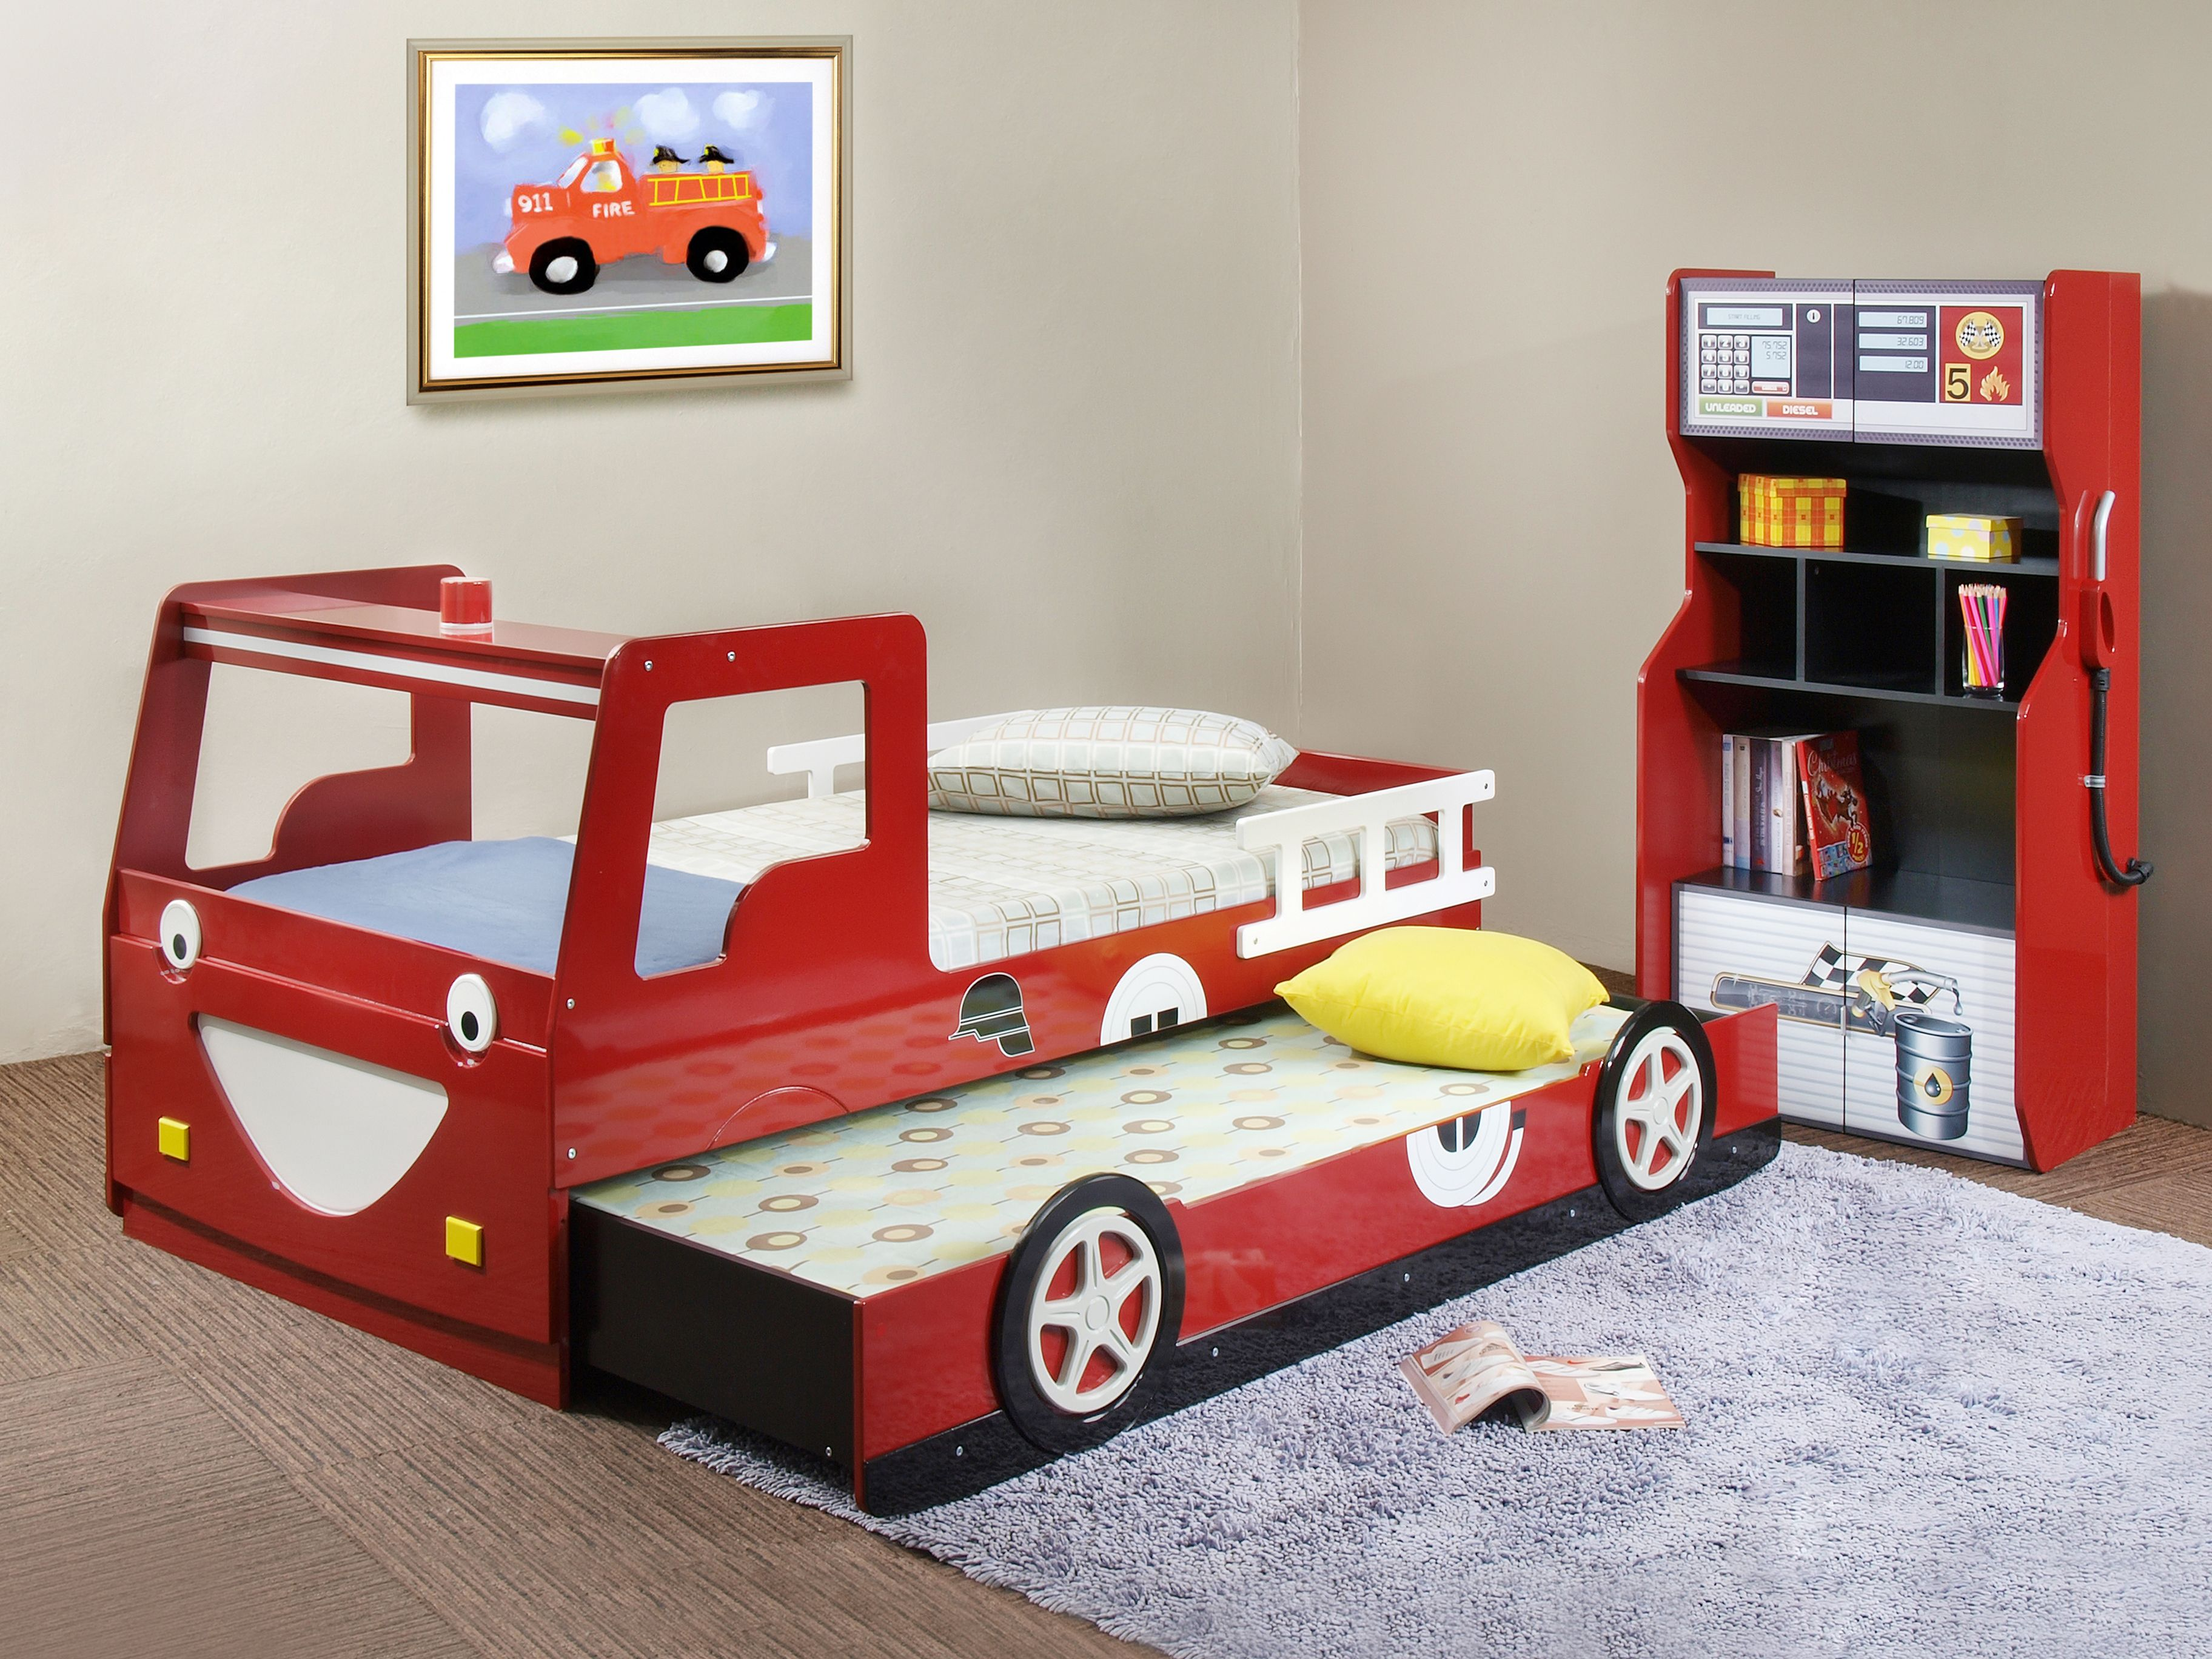 Bedroom Design, Amazing Kids Bed With Racing Cars Models And Other  Vehicles: Red Fire Truck Bed With Trundle Kids Bed